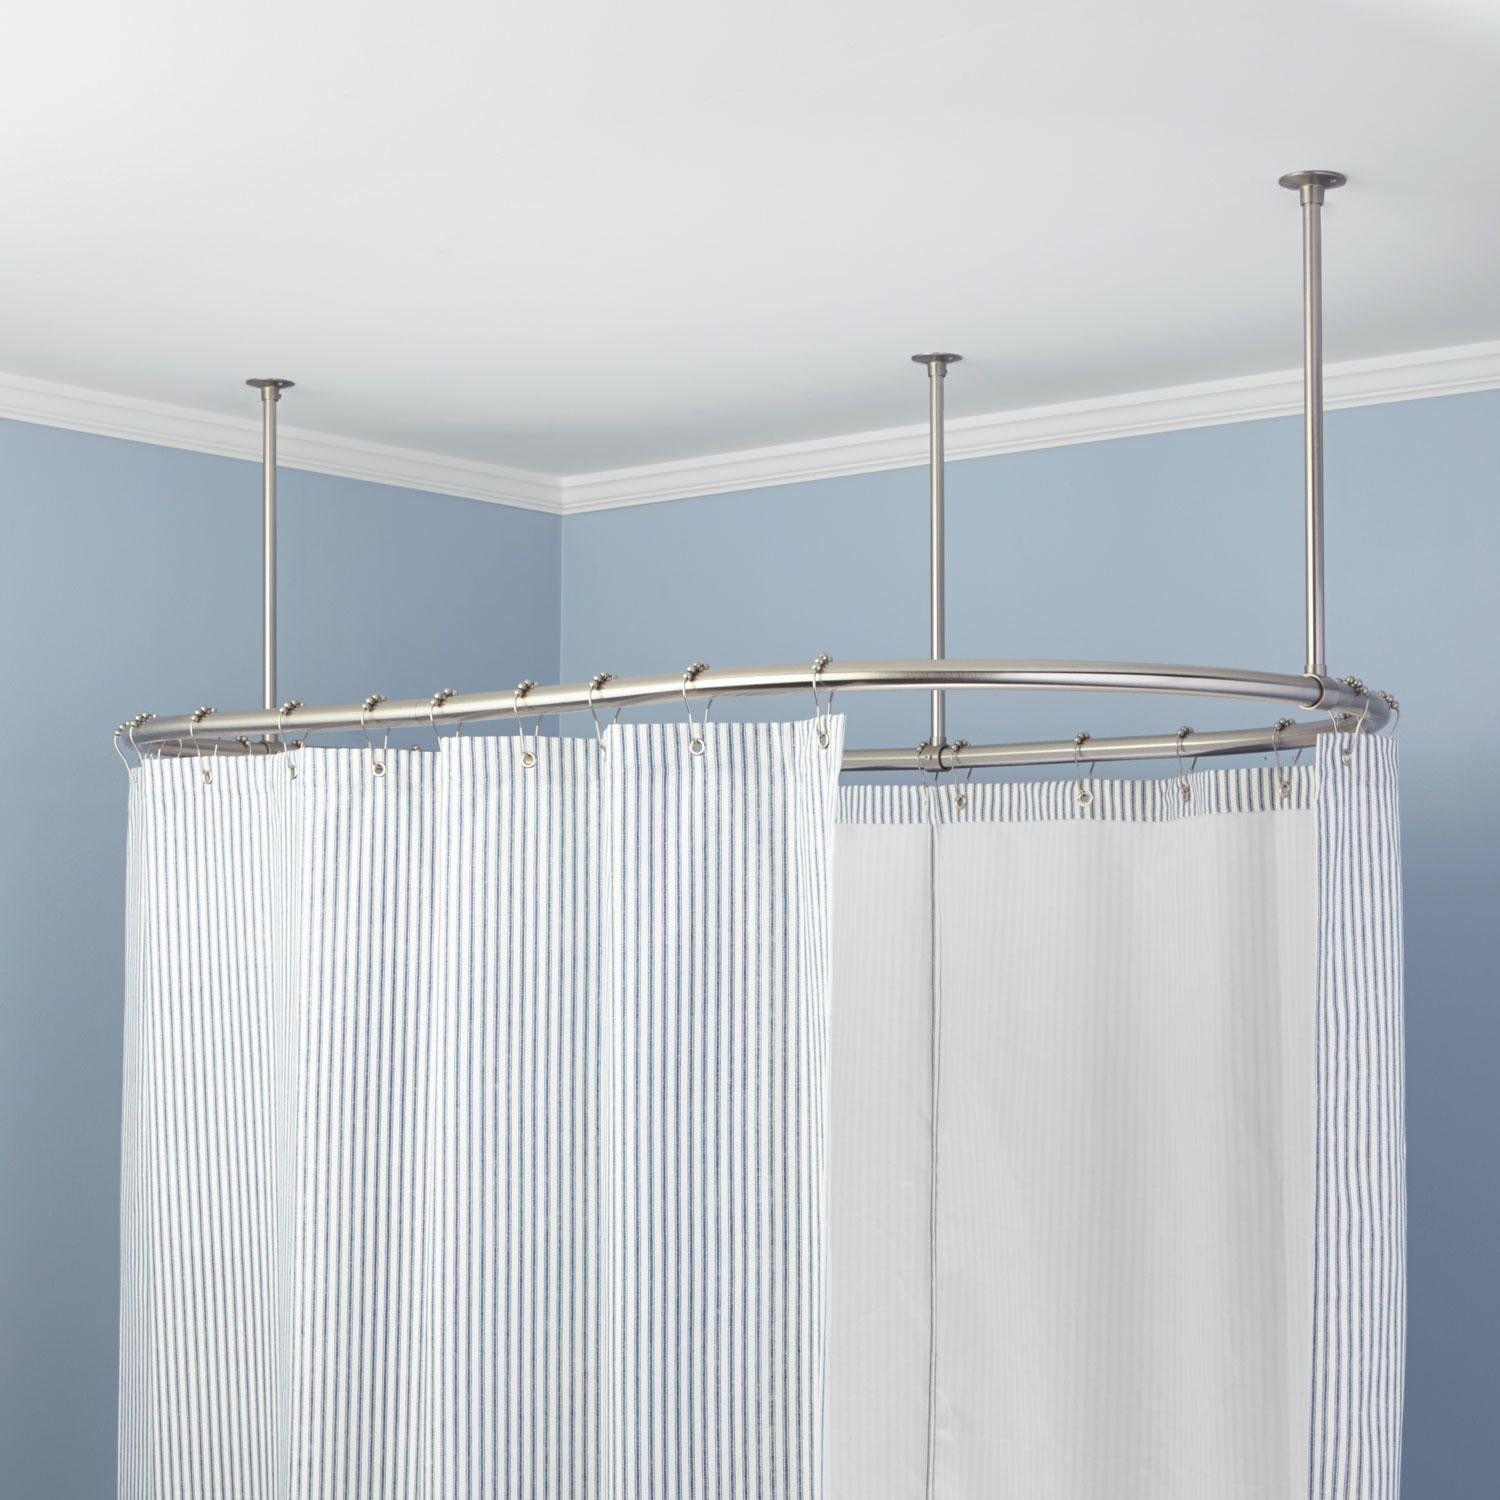 Oval Solid Br Shower Curtain Rod Rods